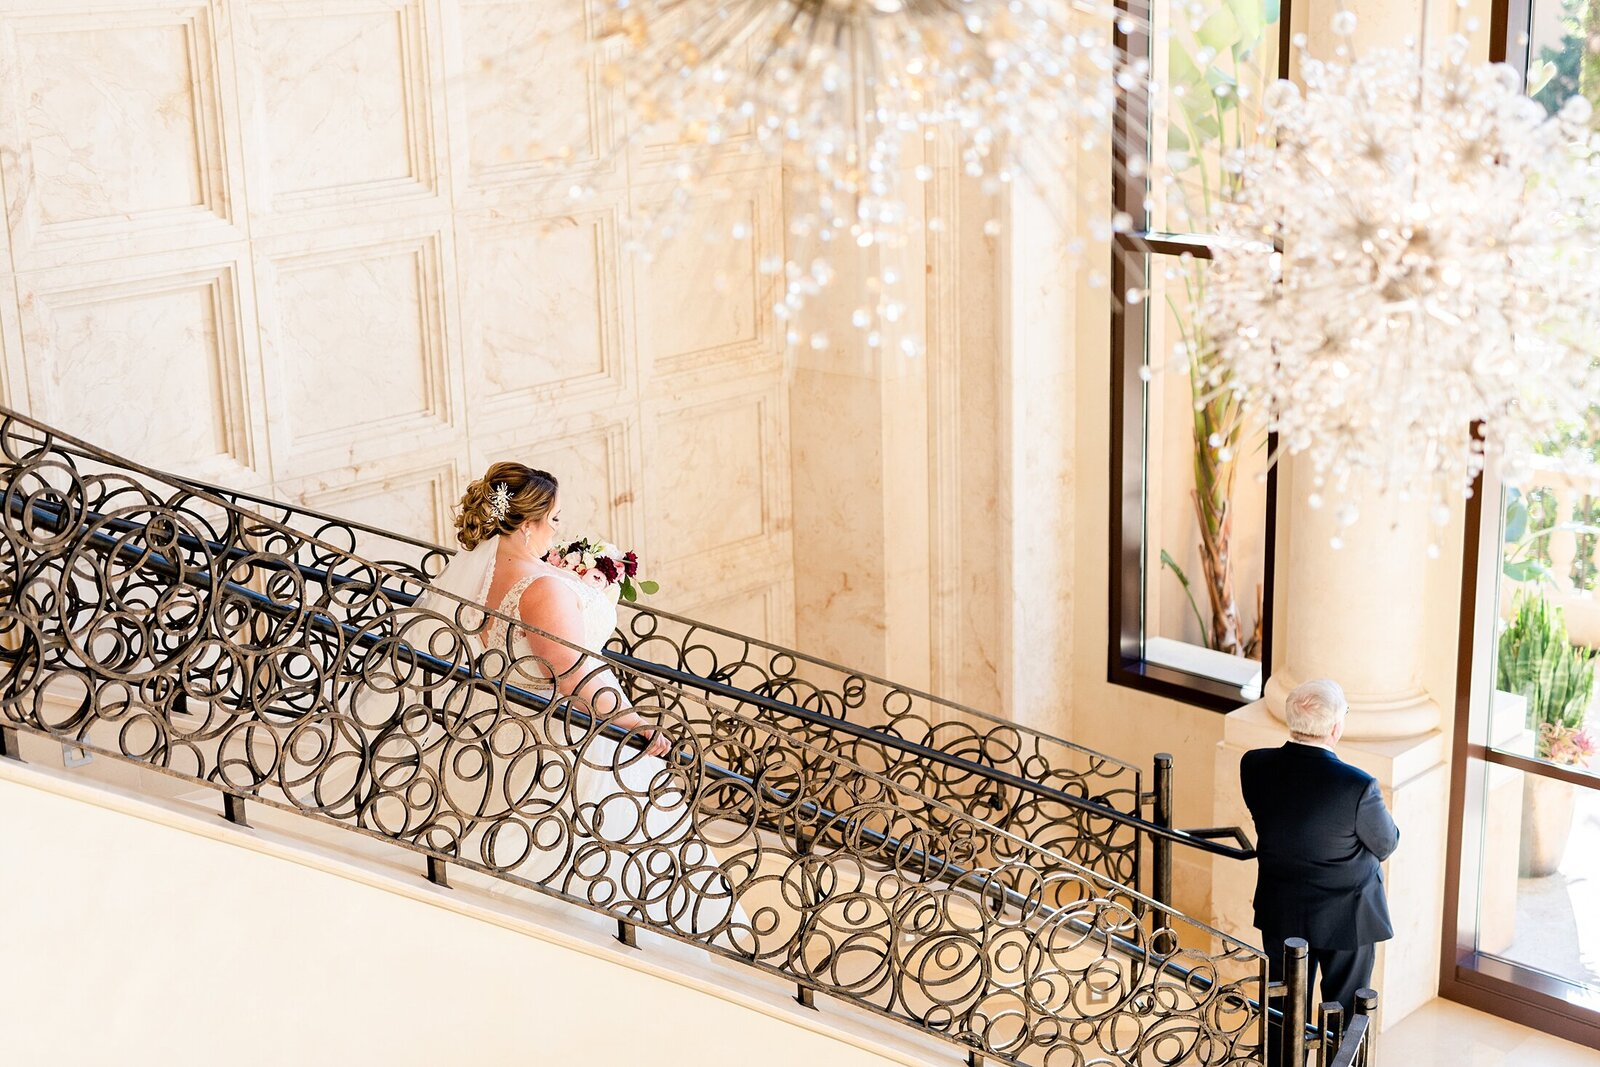 Four Seasons stairs first look | Four Seasons Wedding | Chynna Pacheco Photography